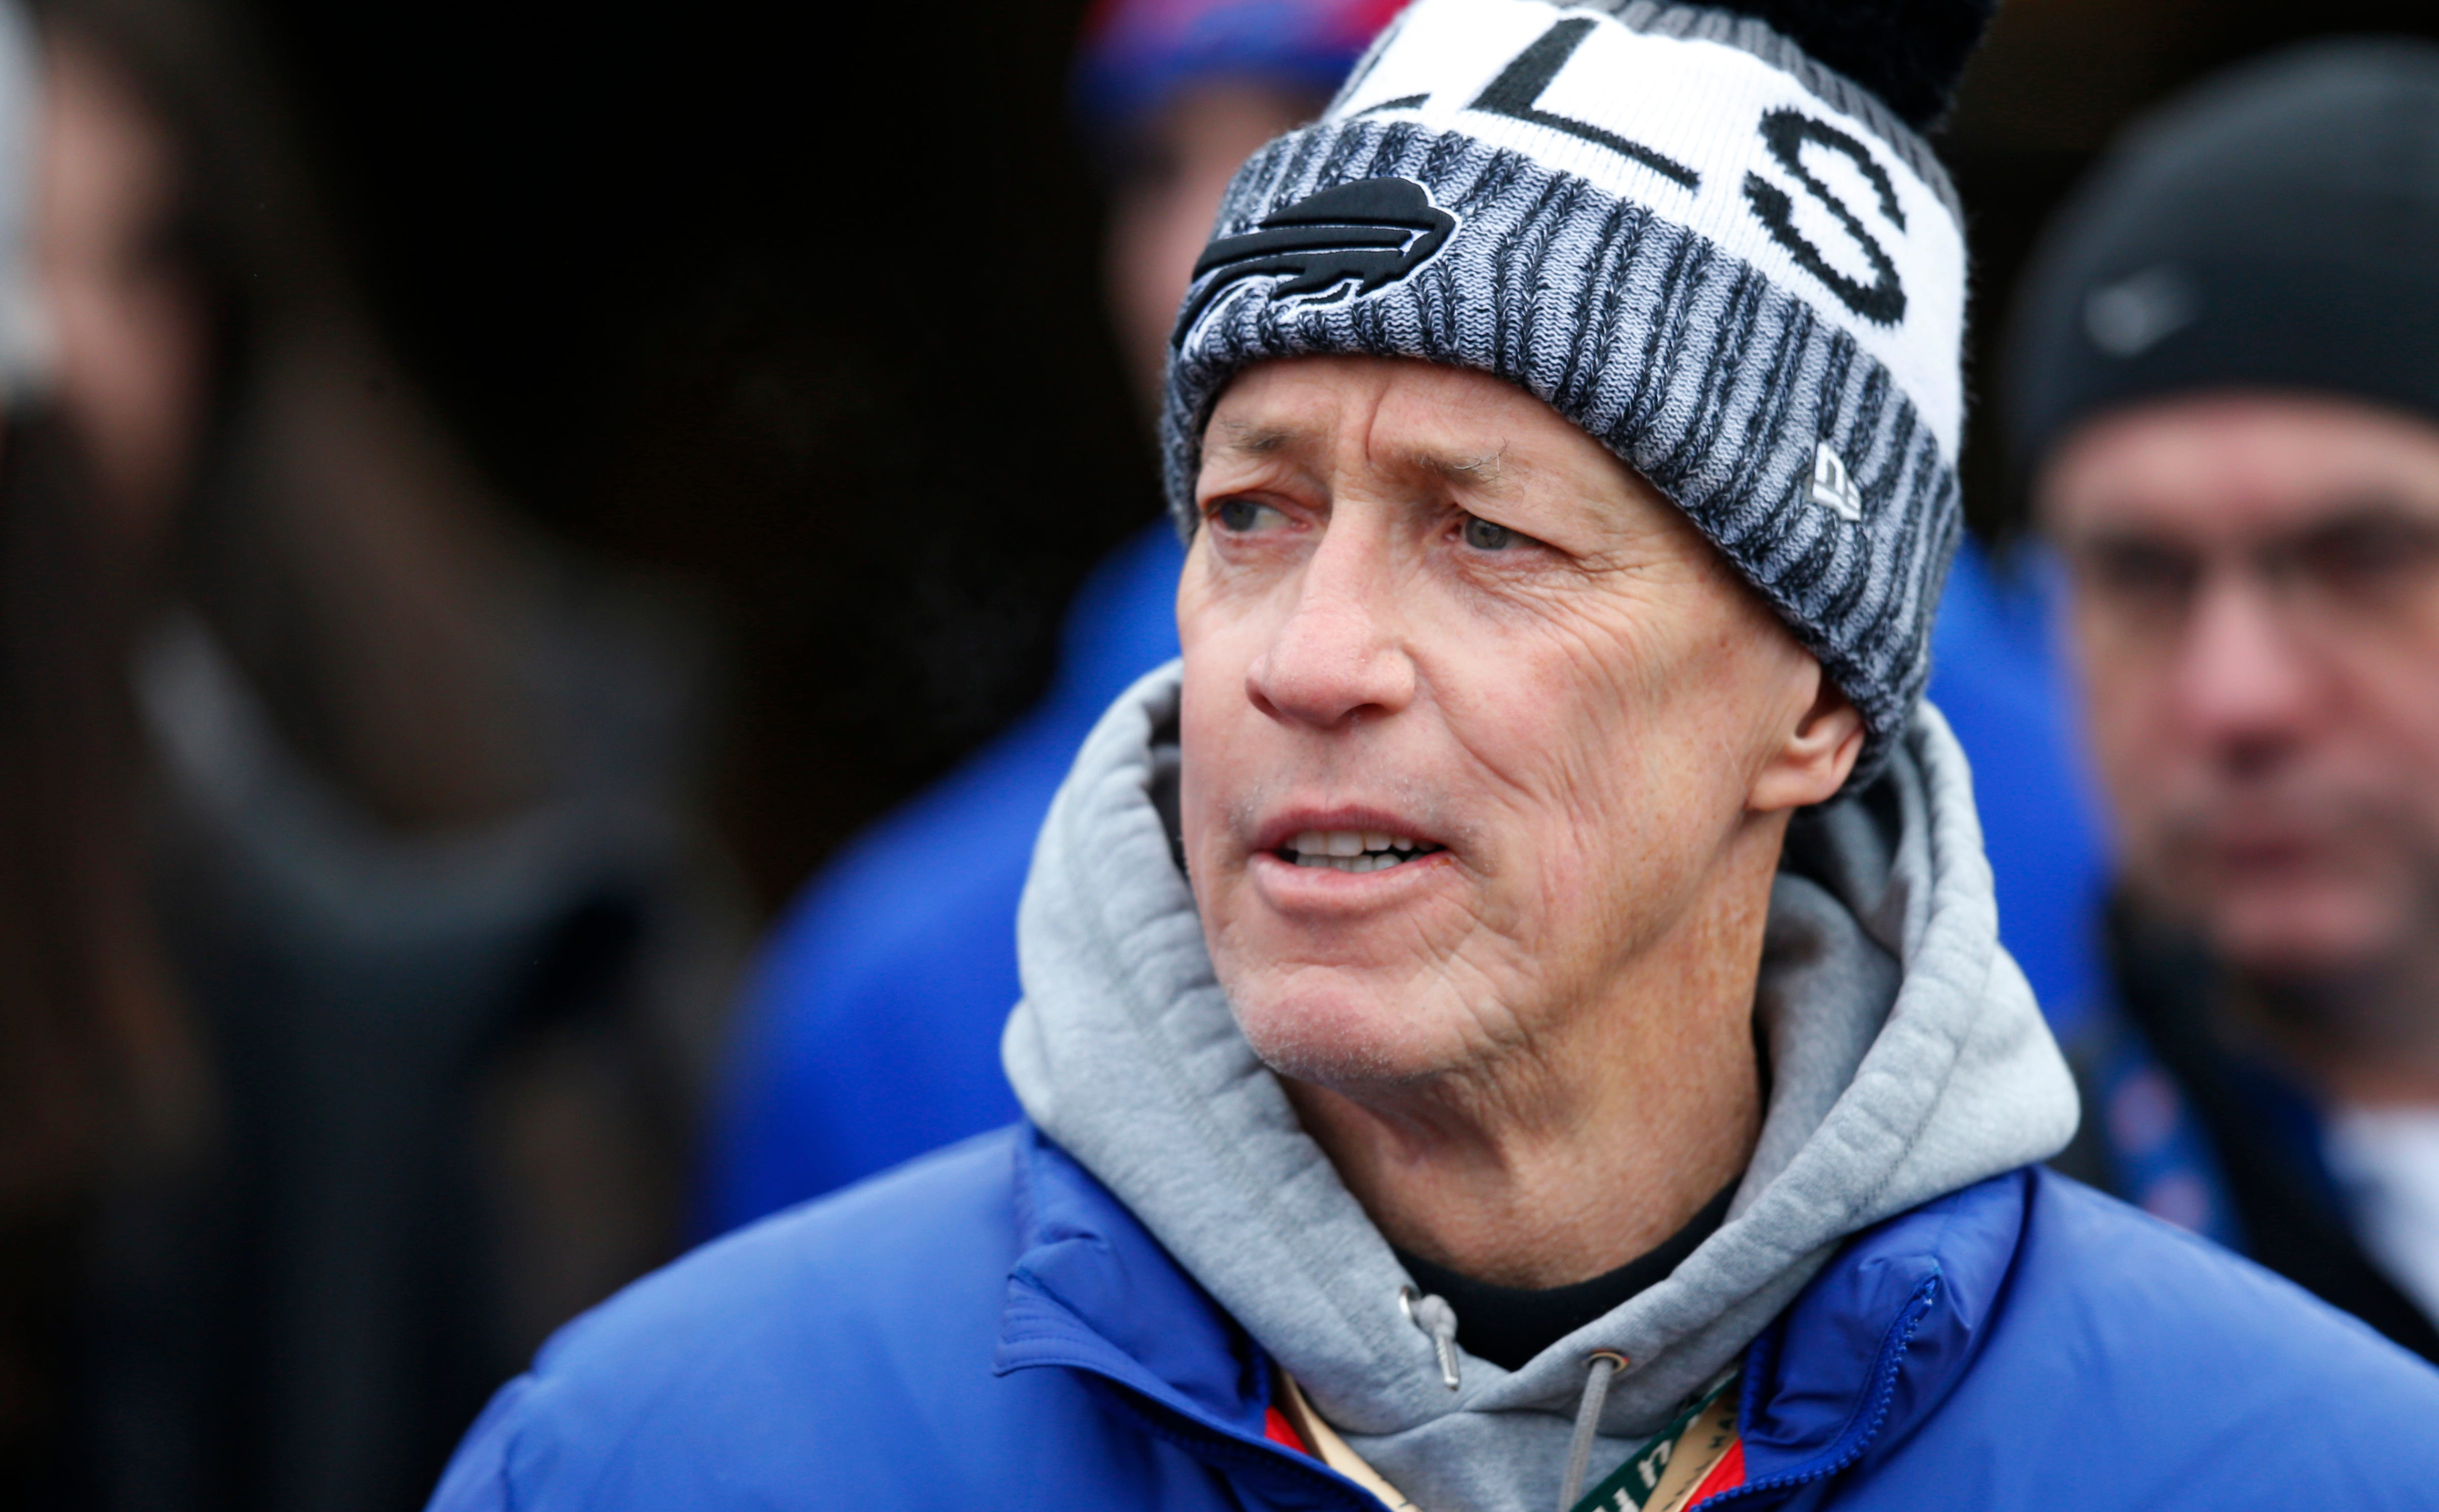 For Jim Kelly it's 'surgery after surgery,' this time for his back